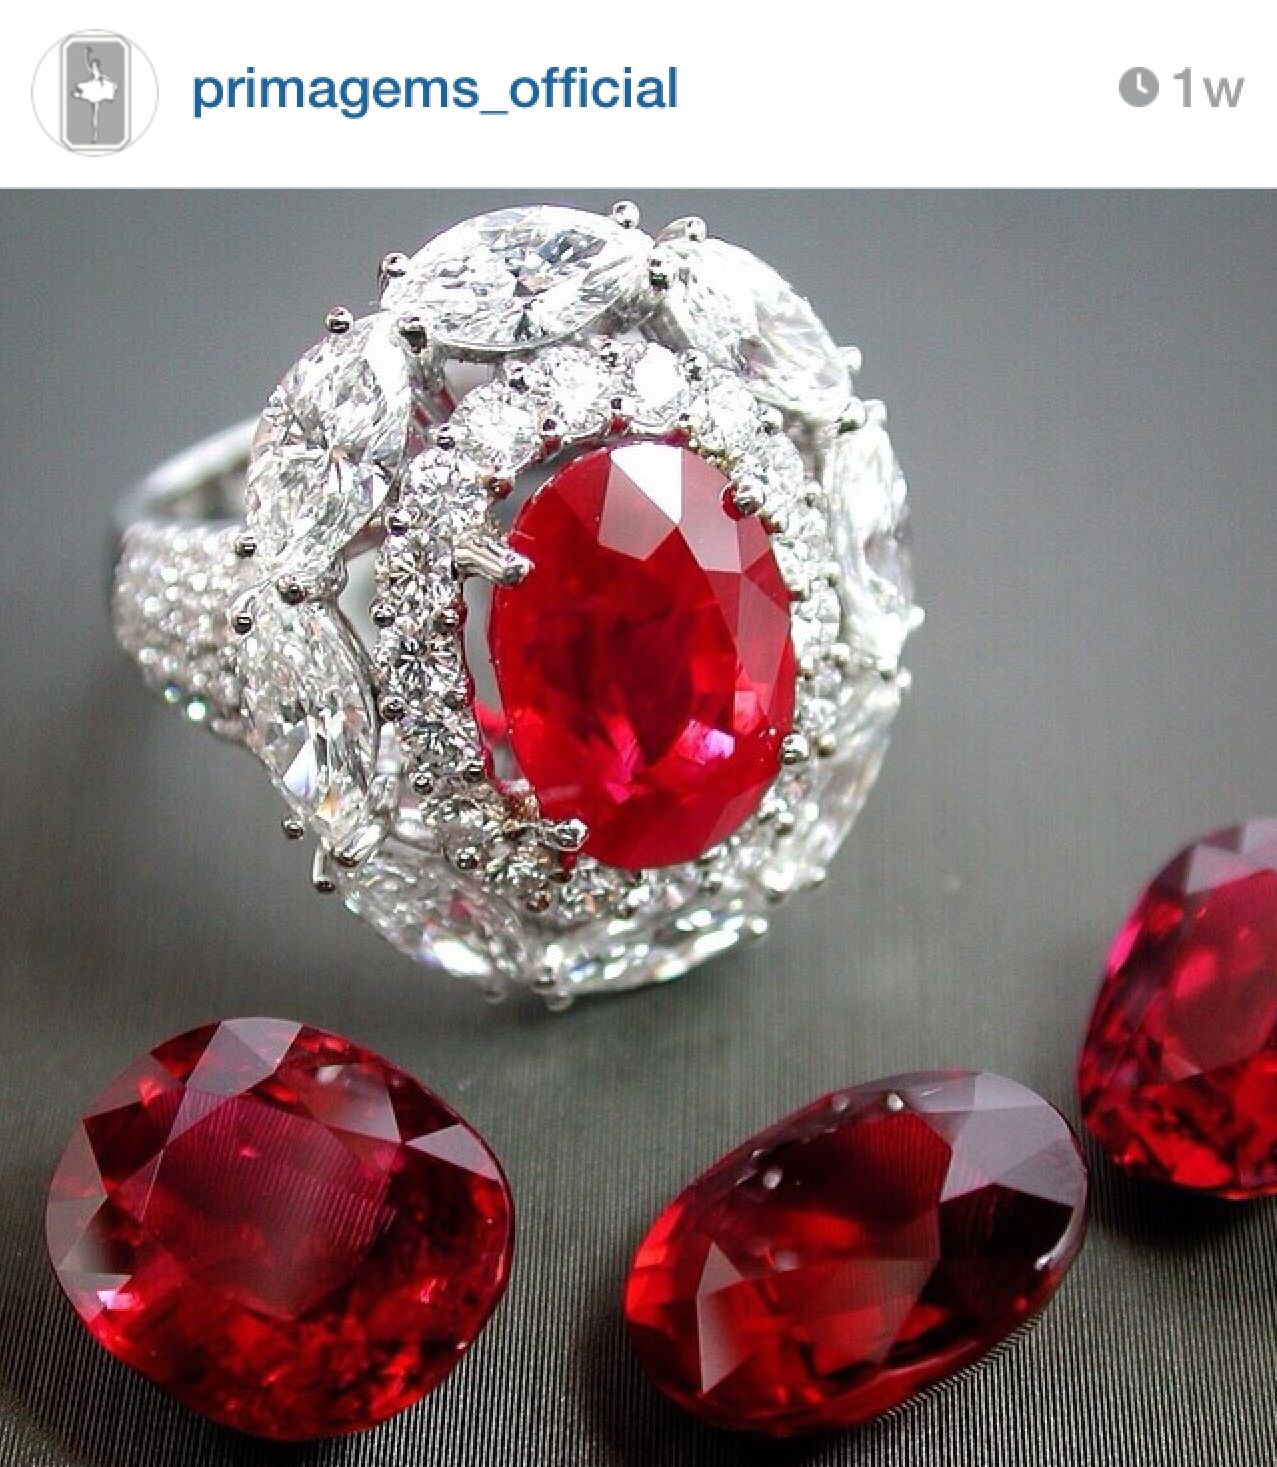 Natural Ruby and Diamond Ring by Prima Gems Siam Paragon / Emporium IG: primagems_official